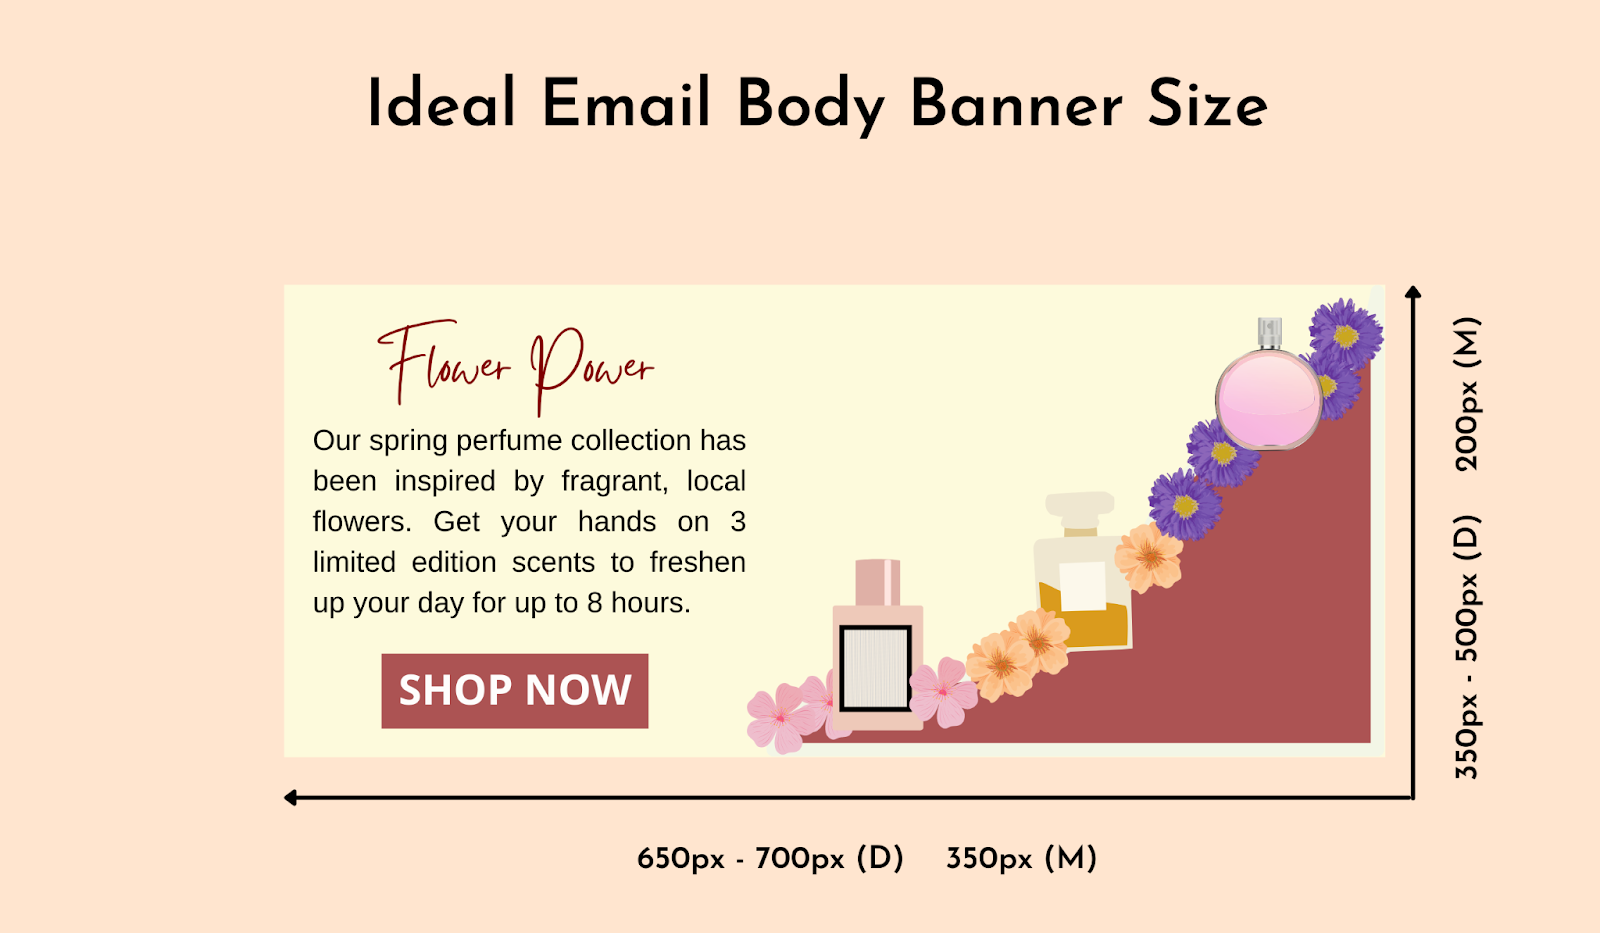 Ideal email body banner size